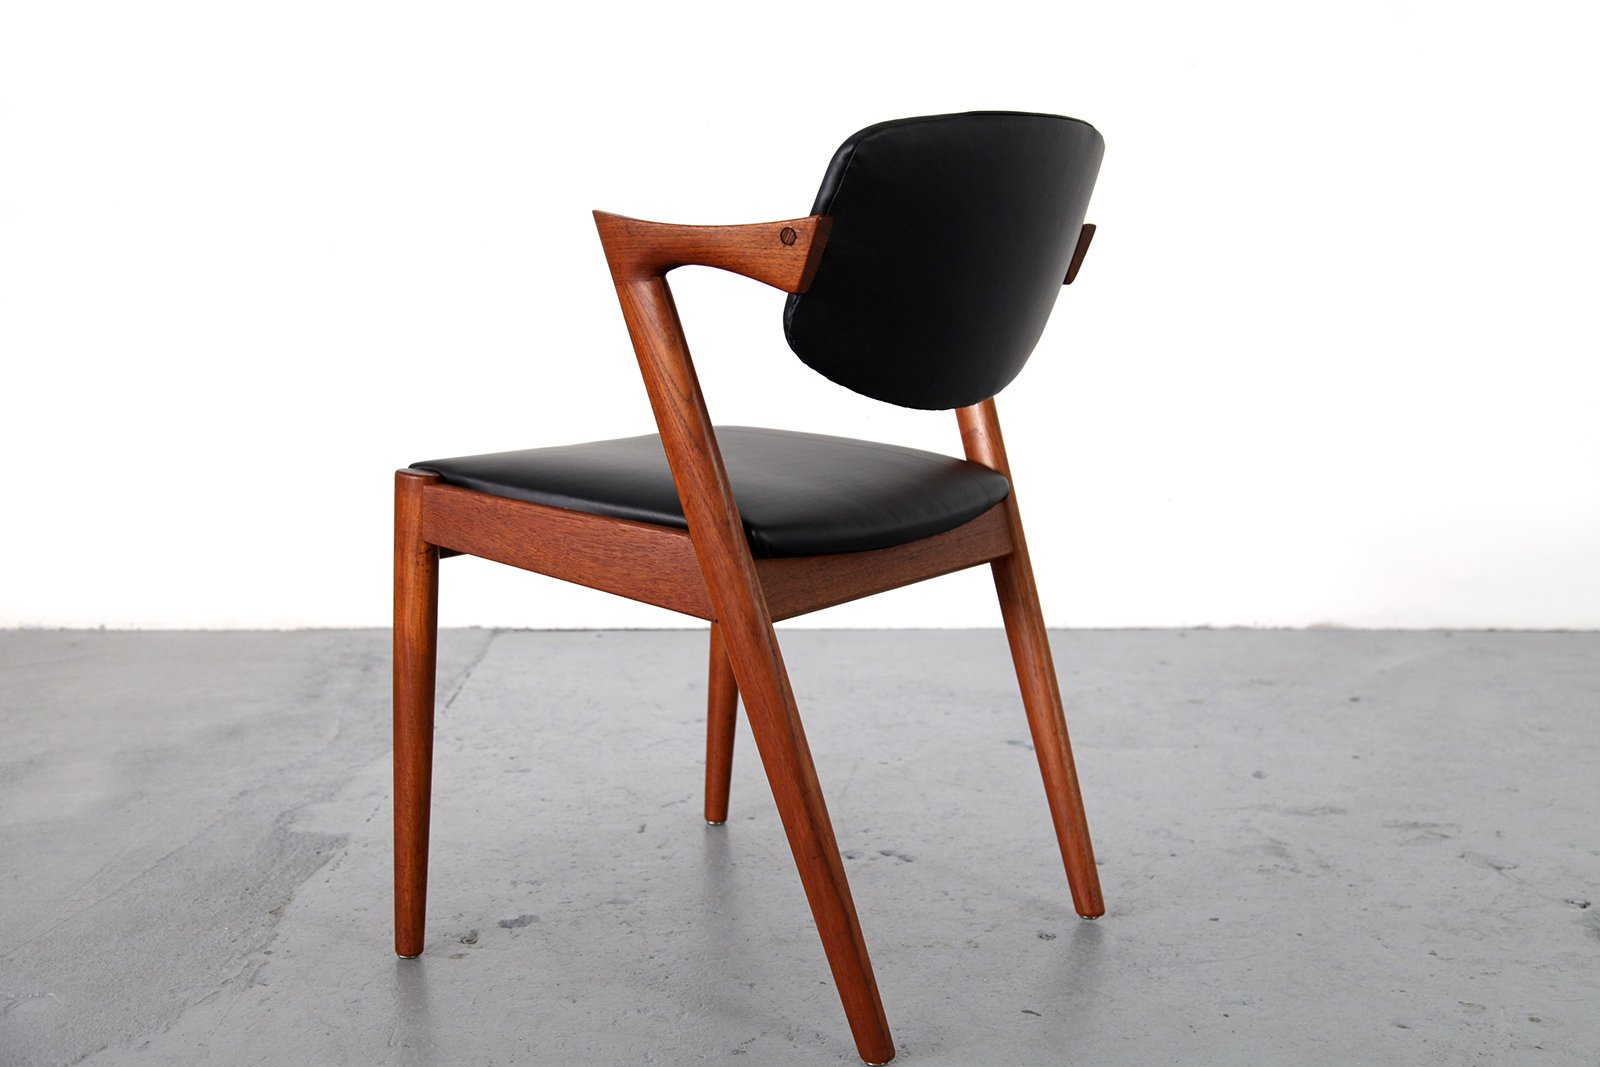 Teak chairs by kai kristiansen for sva m bler set of 4 for sale at pamono - Kai kristiansen chairs ...